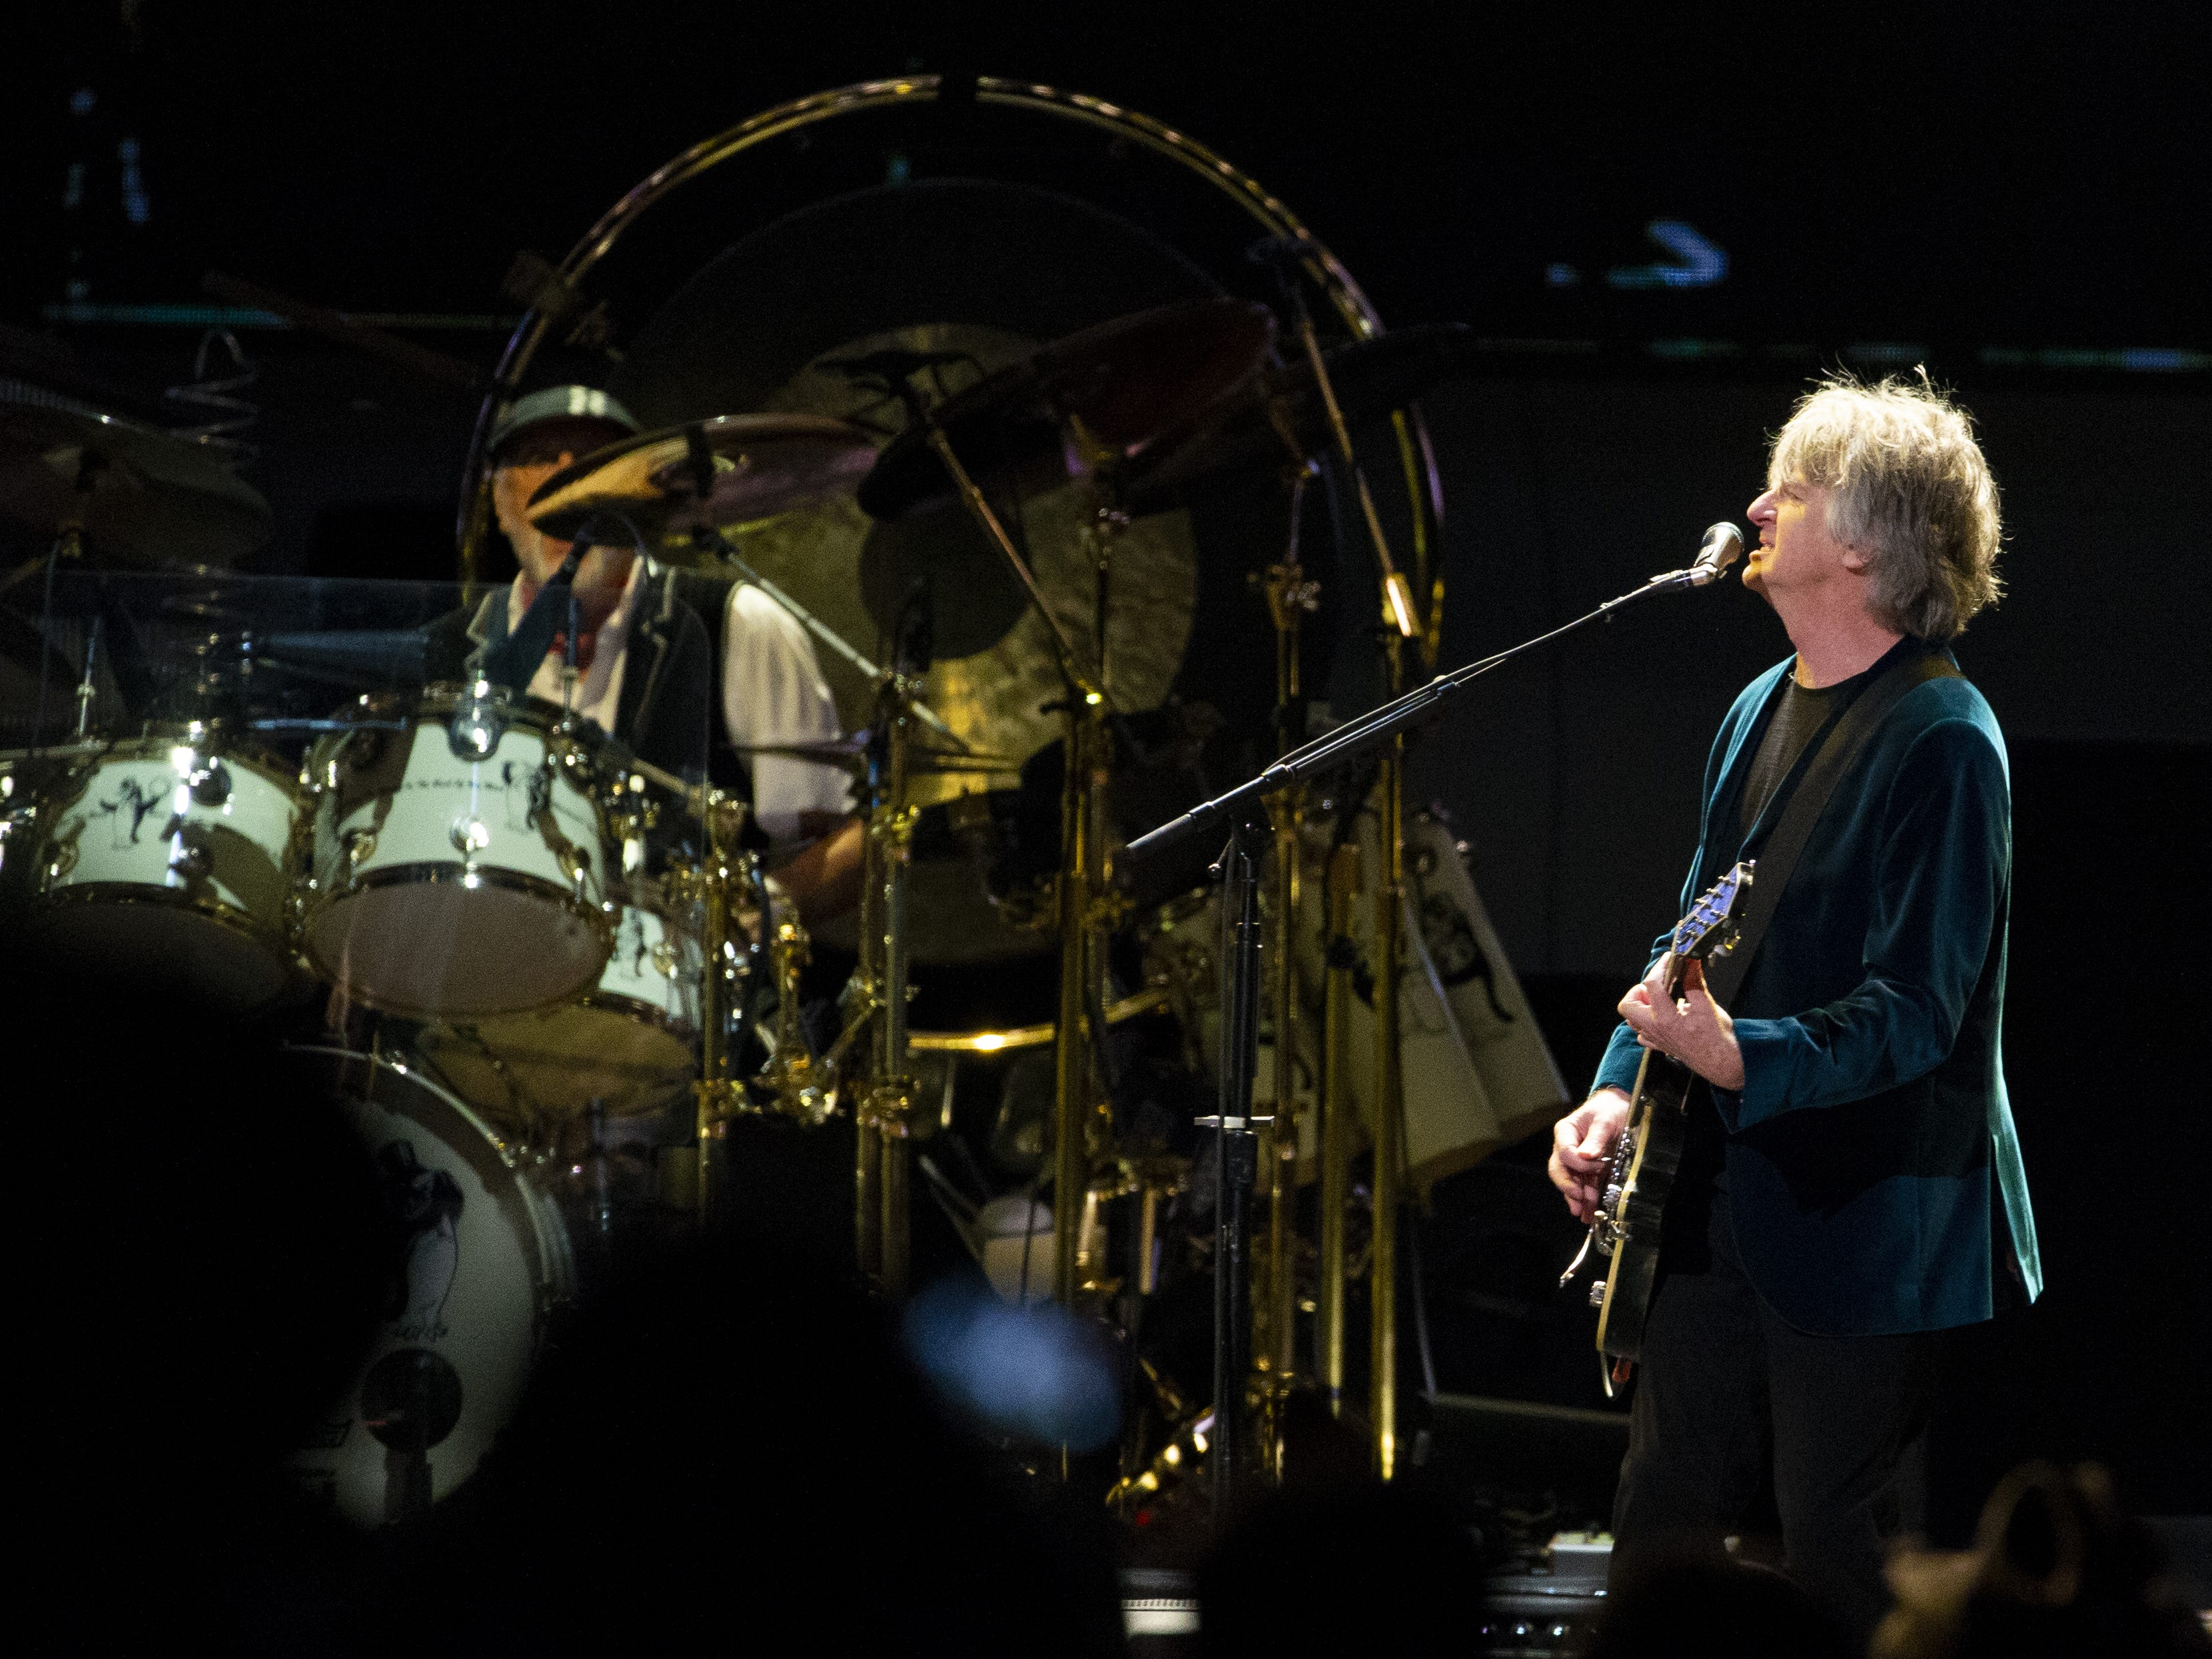 Neil Finn of Fleetwood Mac performs at Talking Stick Resort Arena in Phoenix on November 28, 2018.